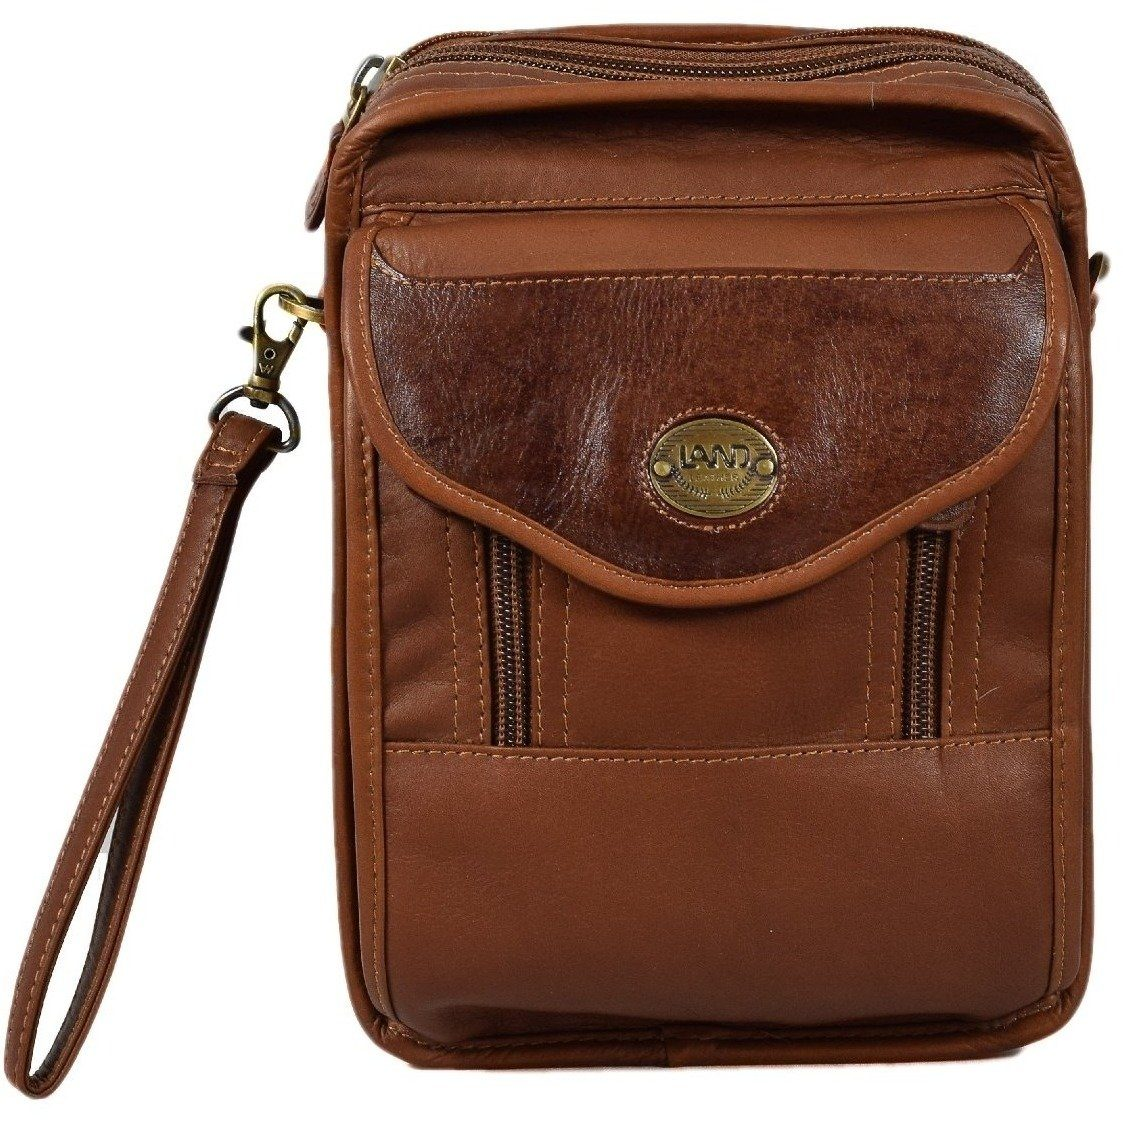 Santa Fe Day Bag, Travel Organizer | LAND Leather